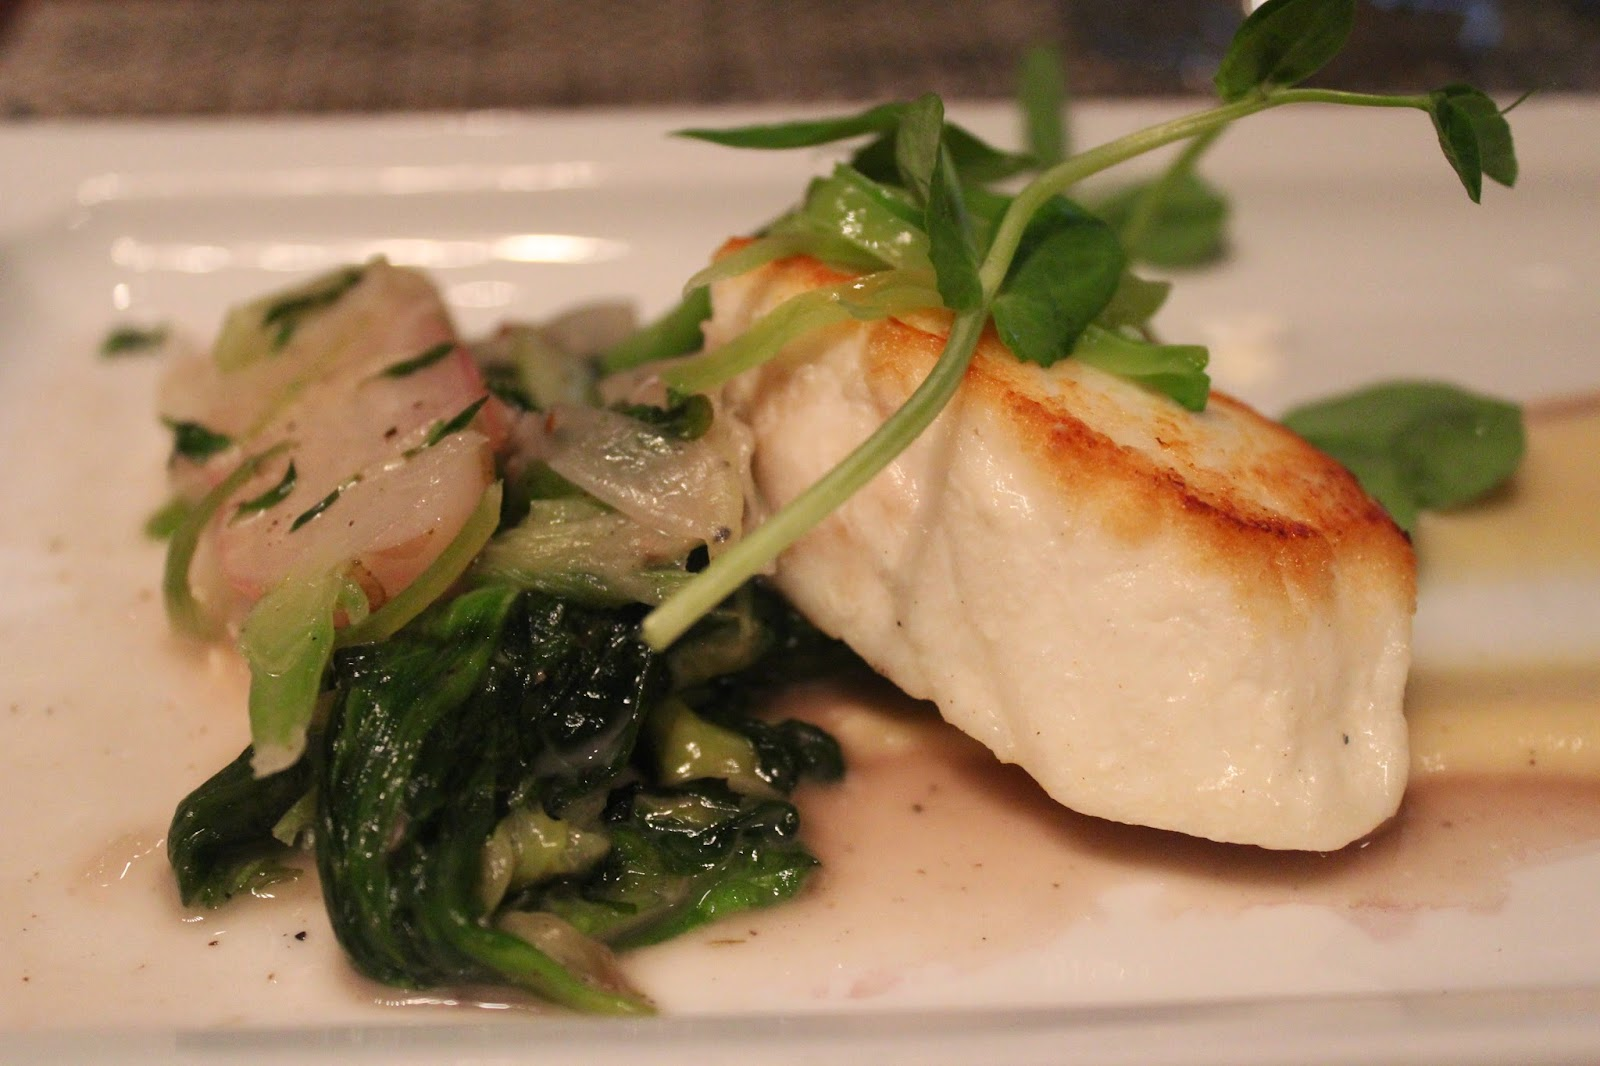 Pacific halibut at Post 390, Boston, Mass.